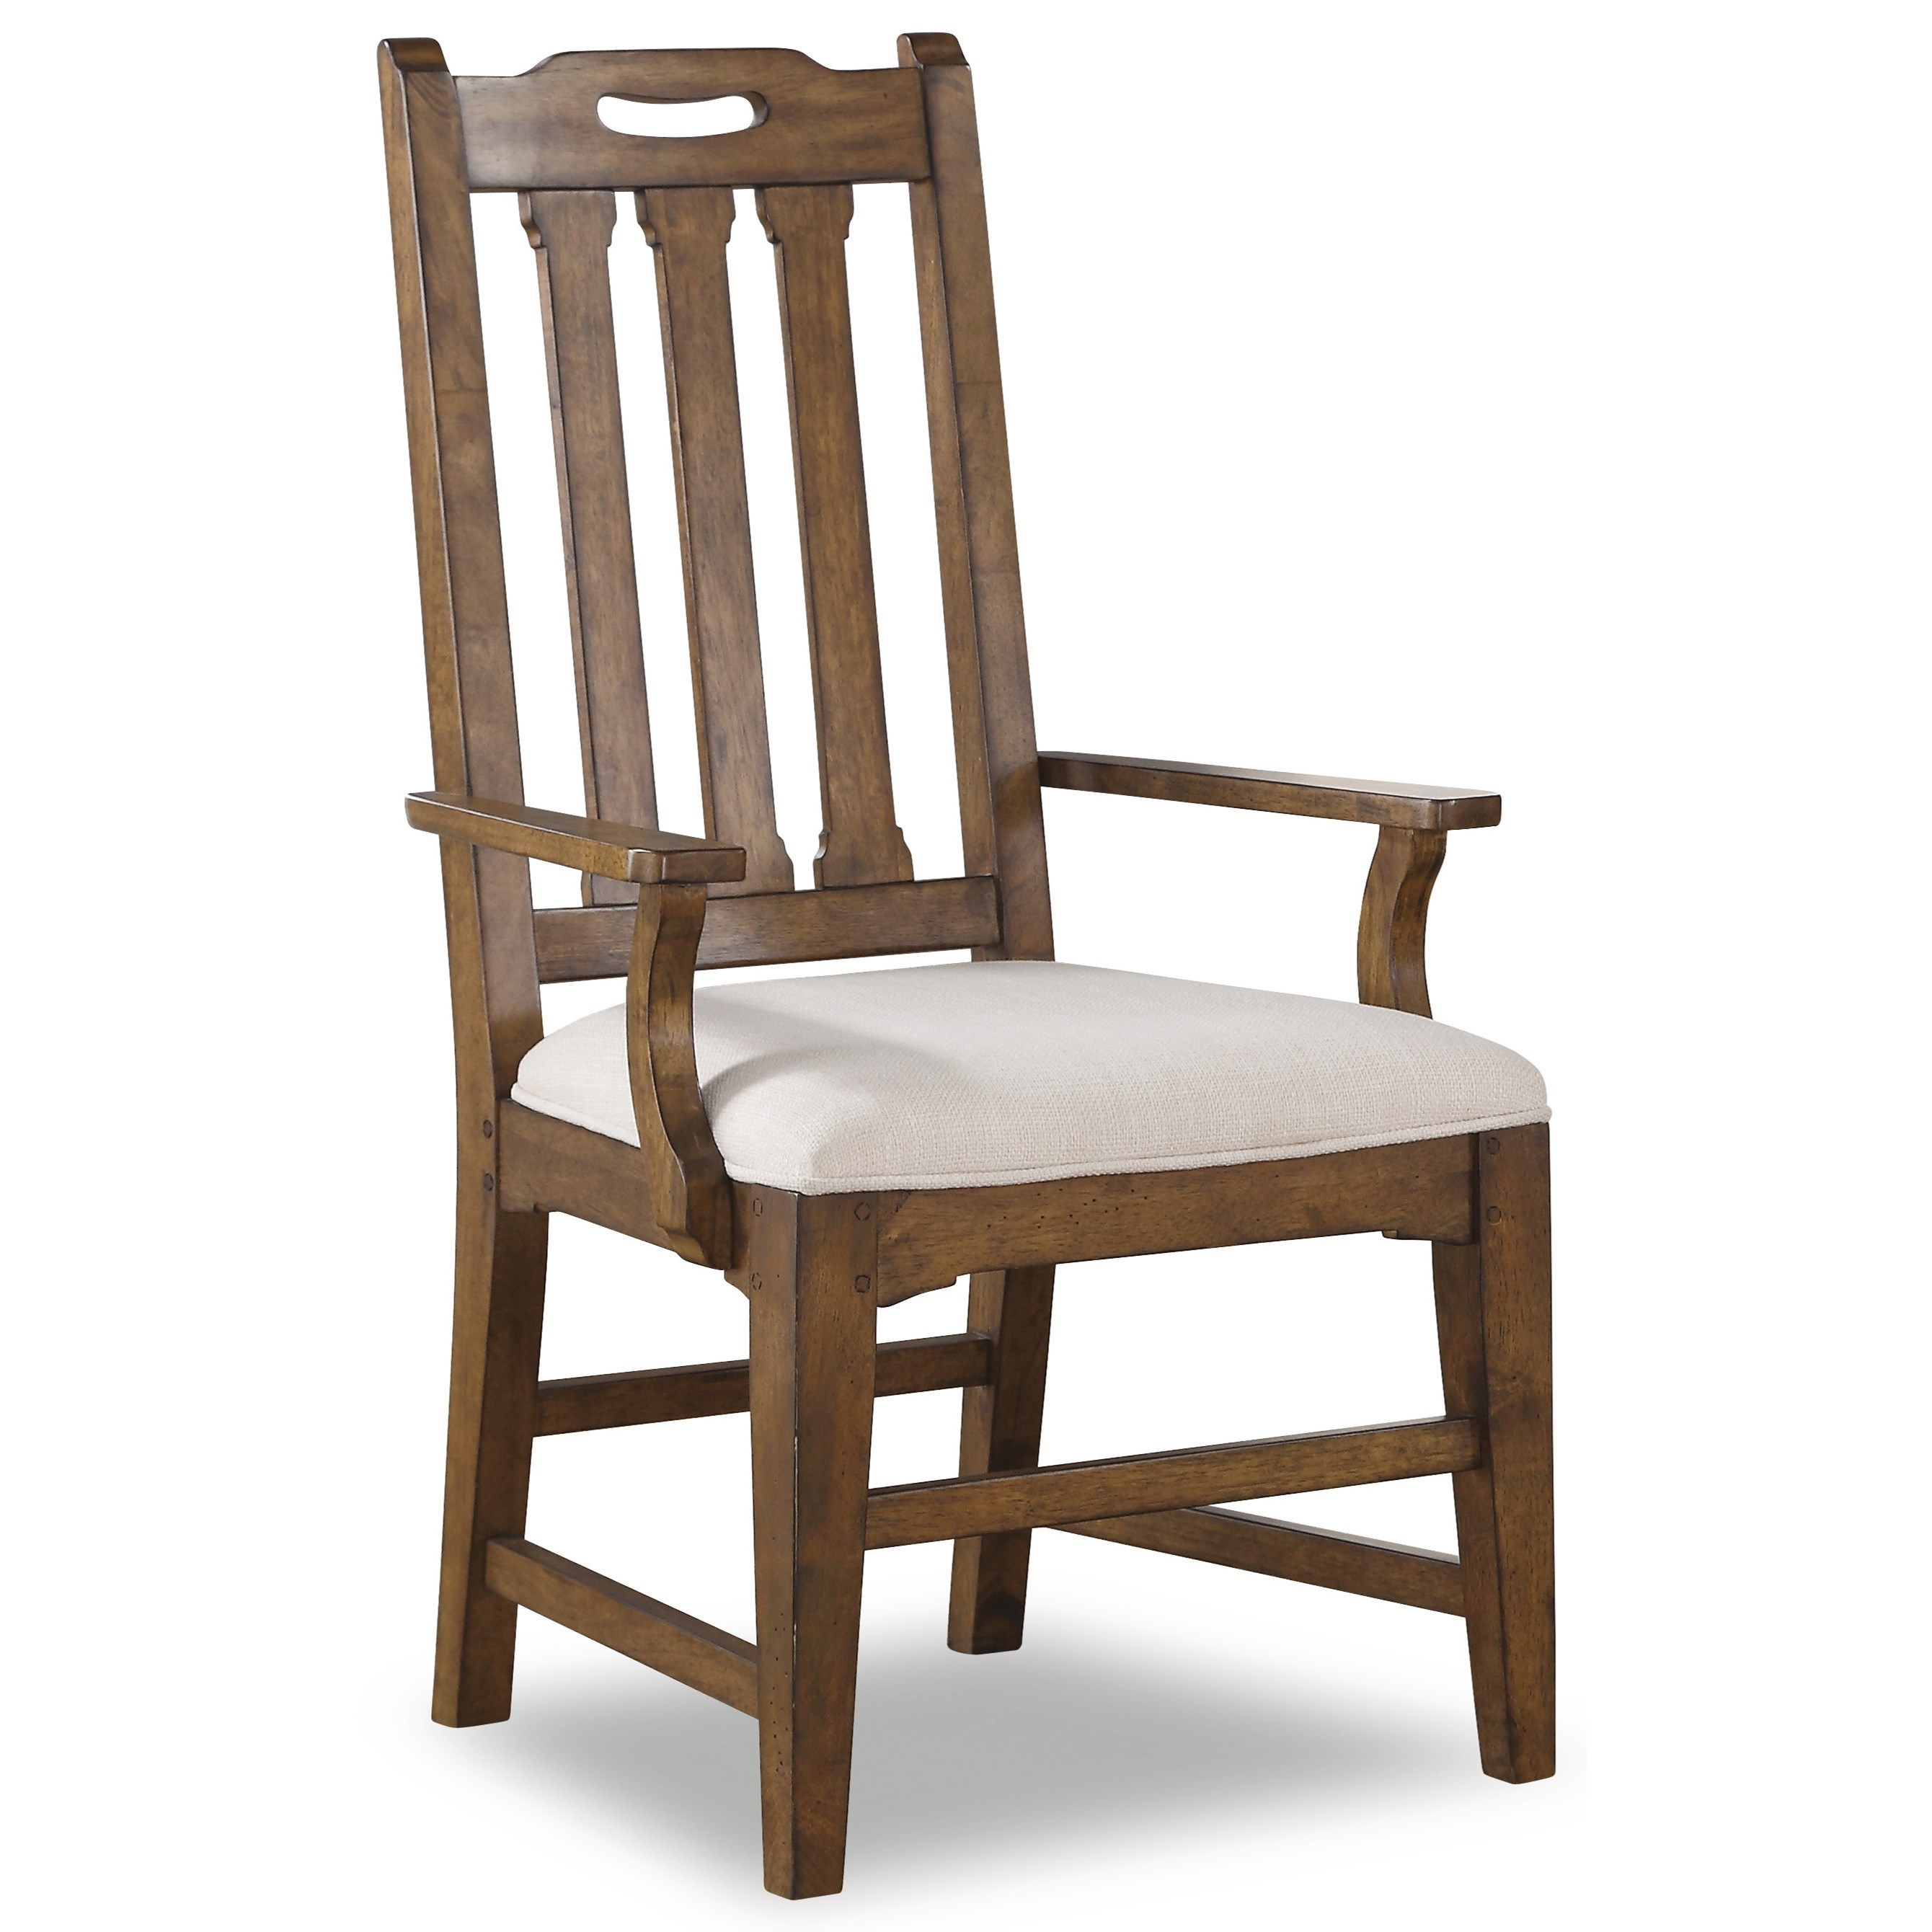 Flexsteel Wynwood Collection Sonora Mission Upholstered Arm Dining Chair  With Slat Back   Dunk U0026 Bright Furniture   Dining Arm Chairs